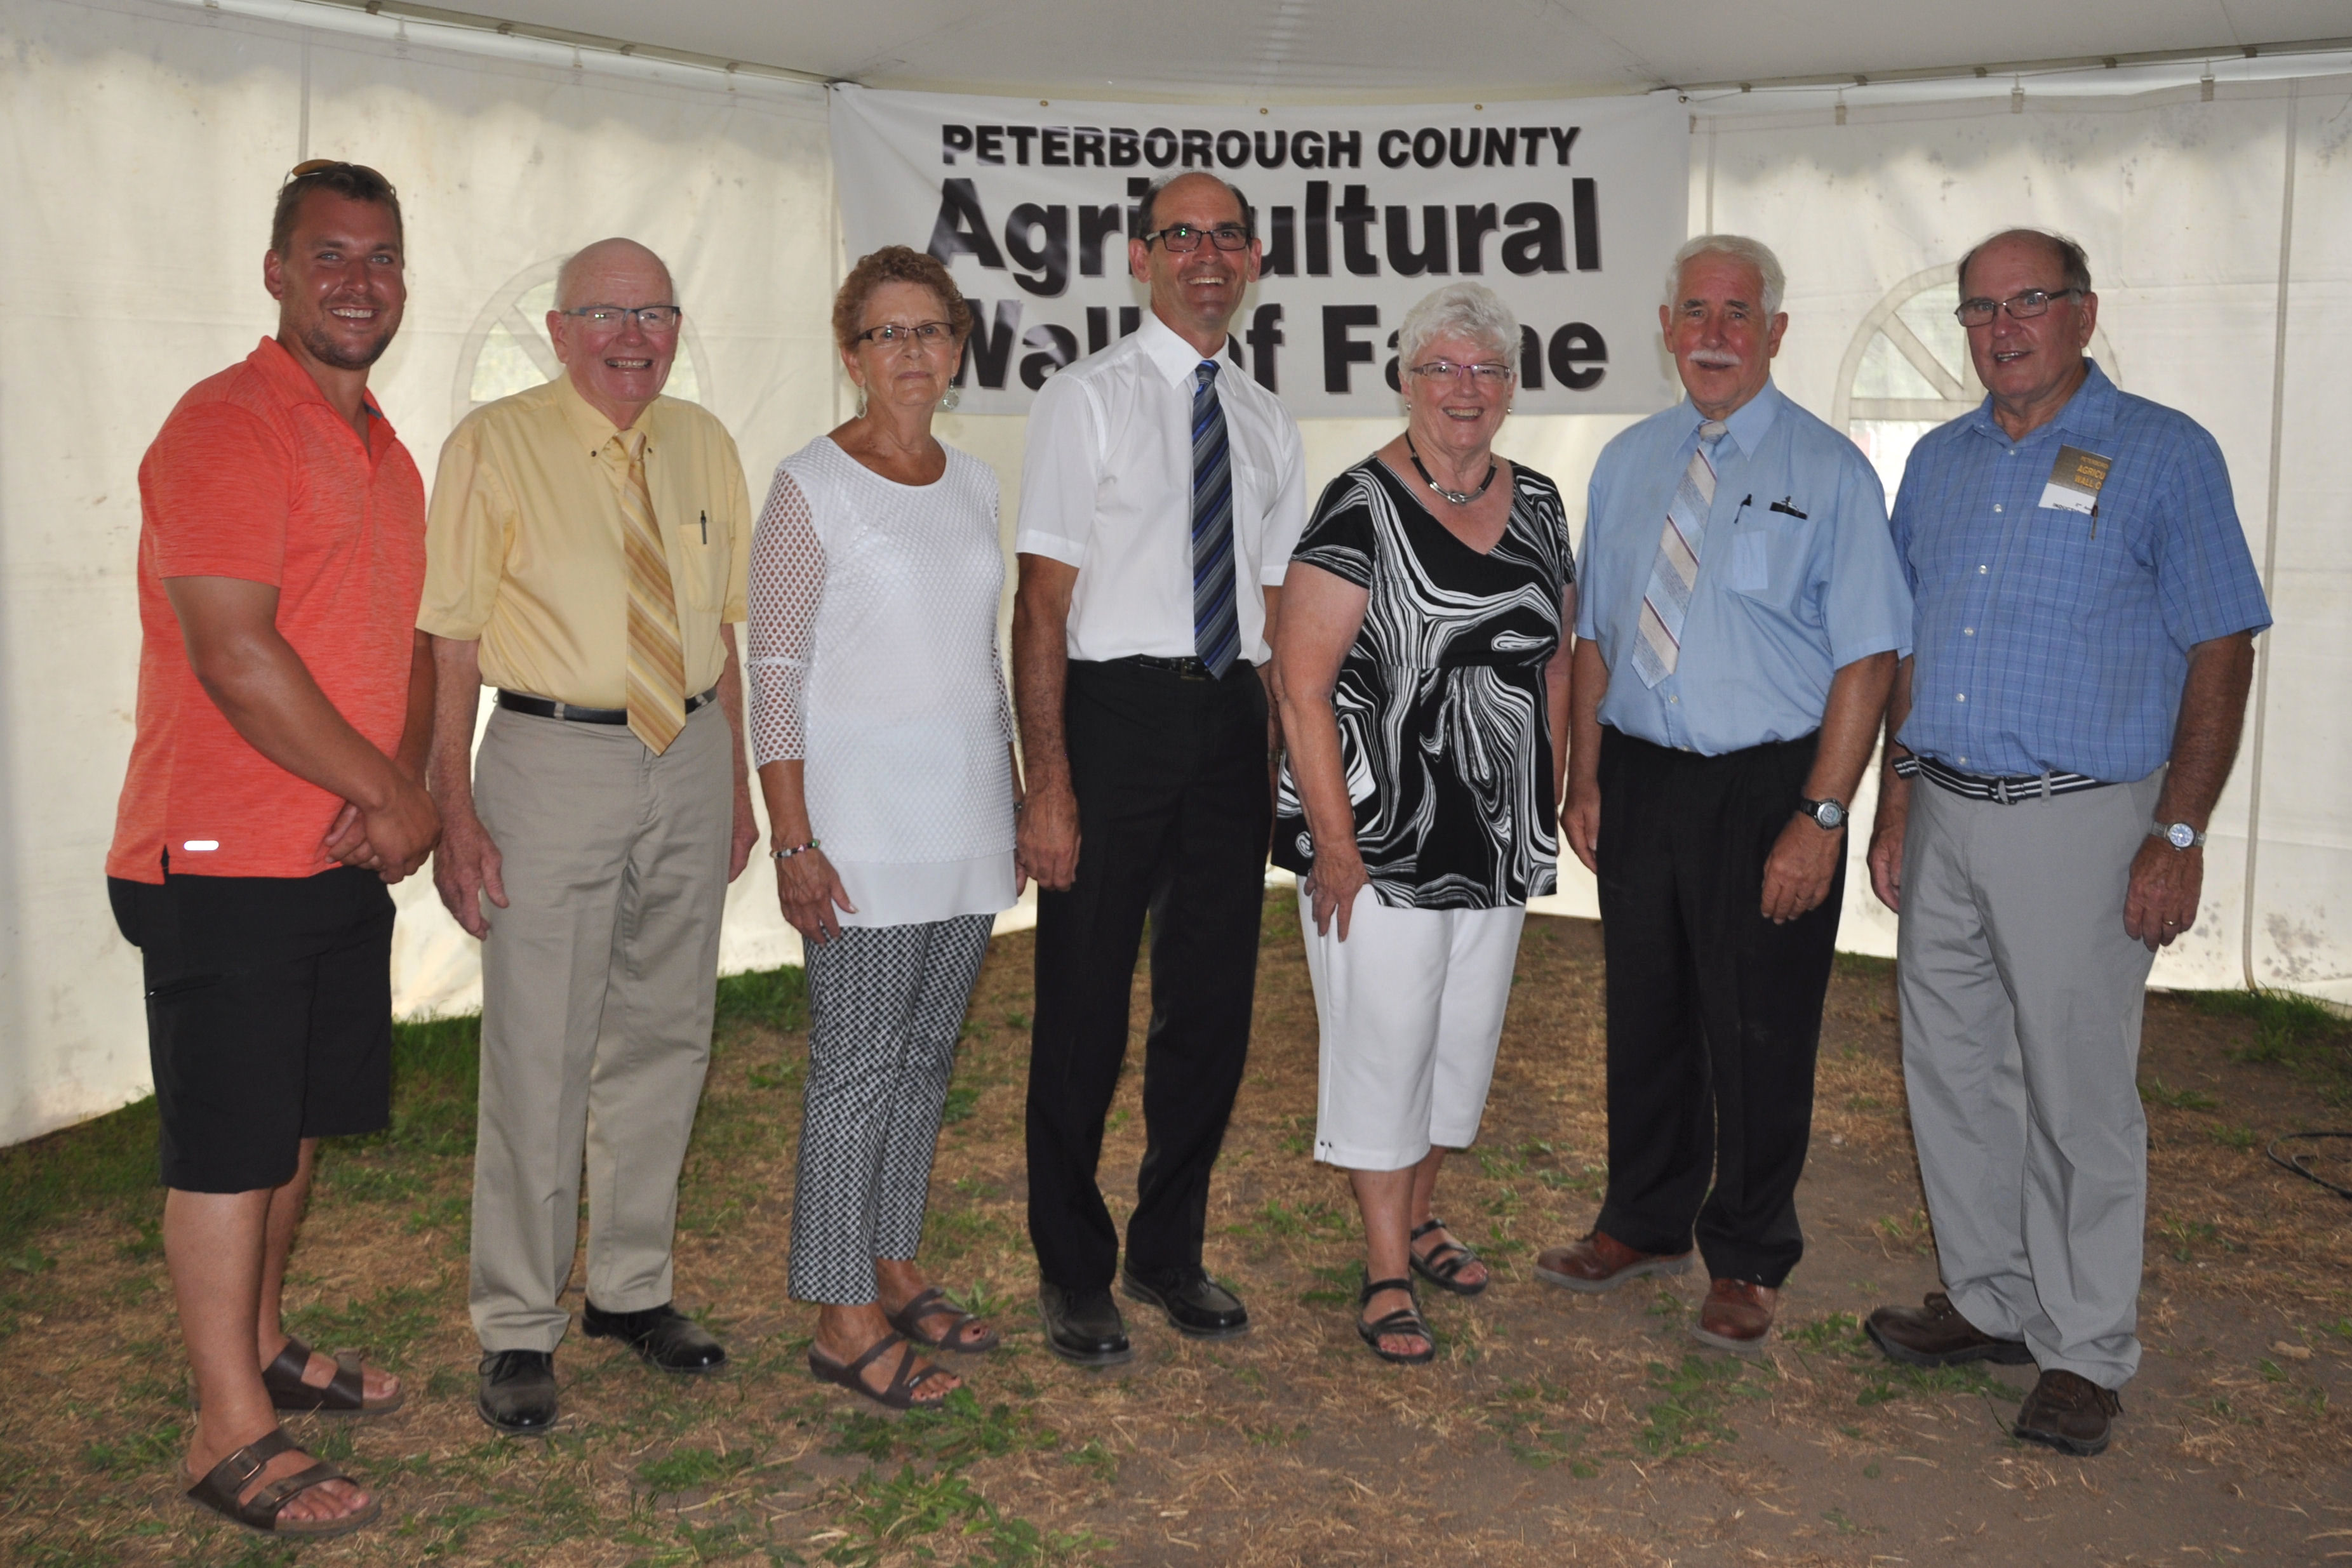 2016 Peterborough Agricultural Wall of Fame Committee, Mike Telford, David Brackenridge, Colleen Terpstra, Wayne Warner, Getha Sherry, John Cockburn, David Nelson, missing Kevin Suurd, Marg Dawson